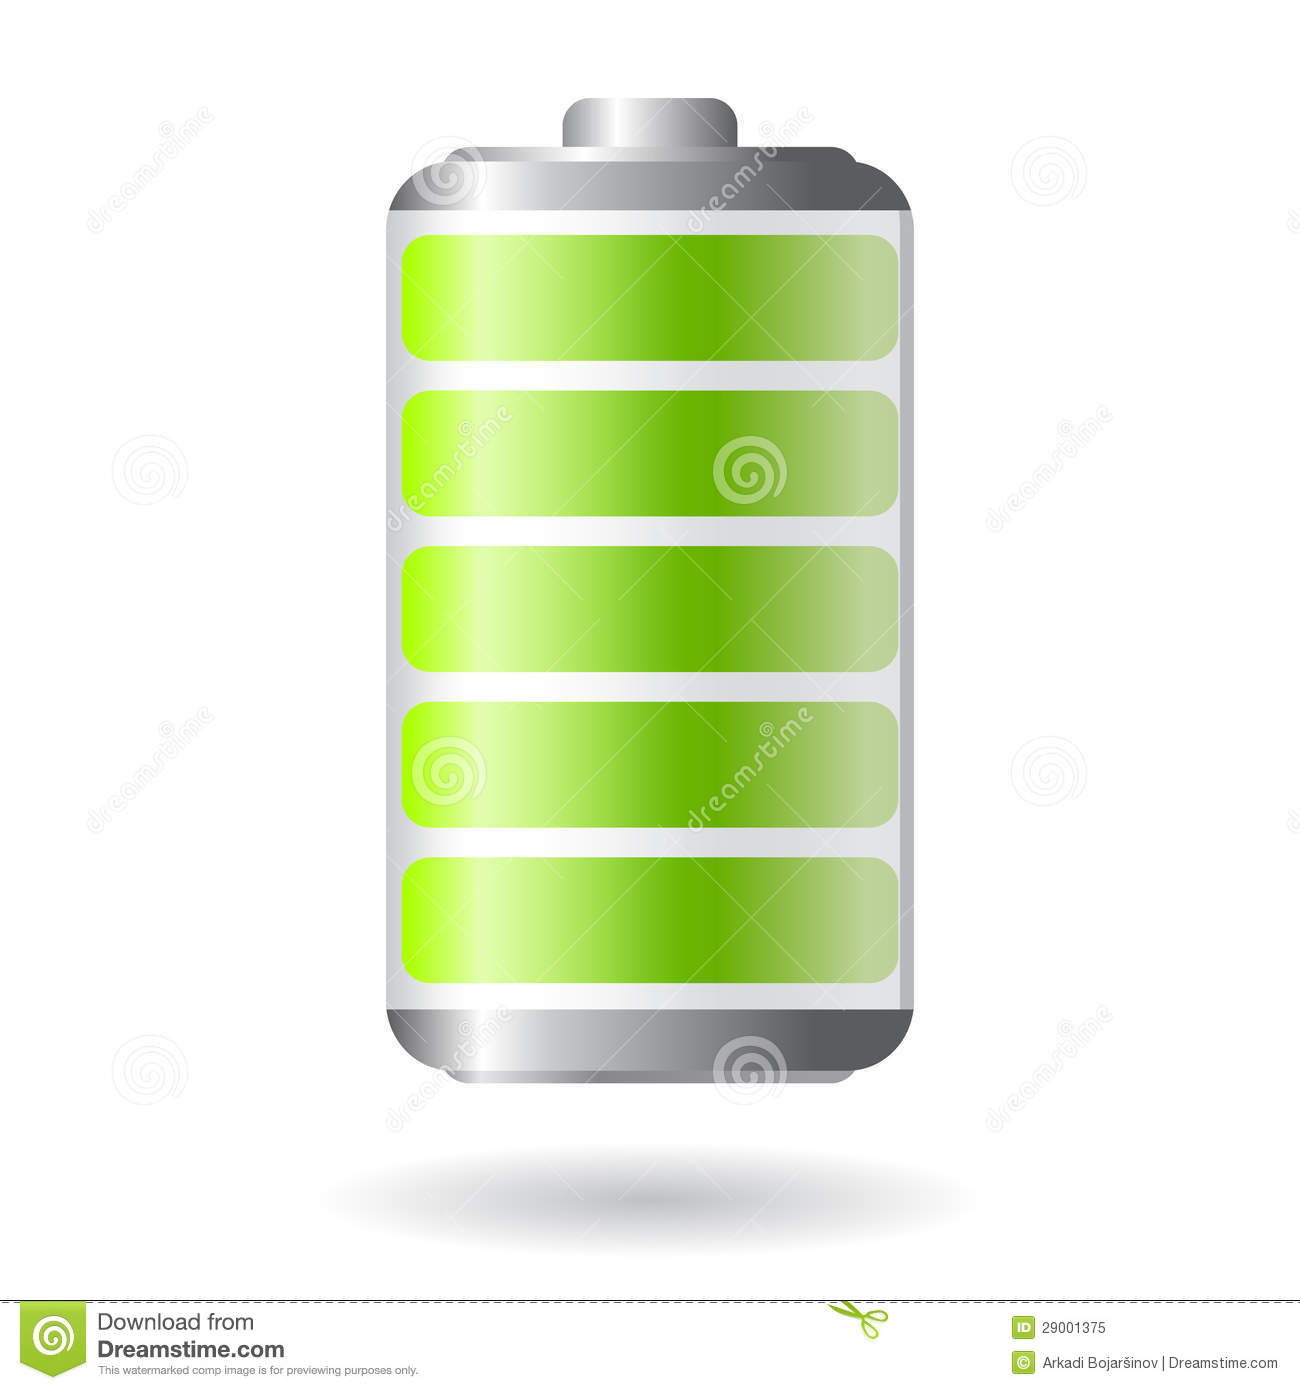 Alkaline Batterie Vector Battery Icon Stock Vector. Illustration Of Glassy